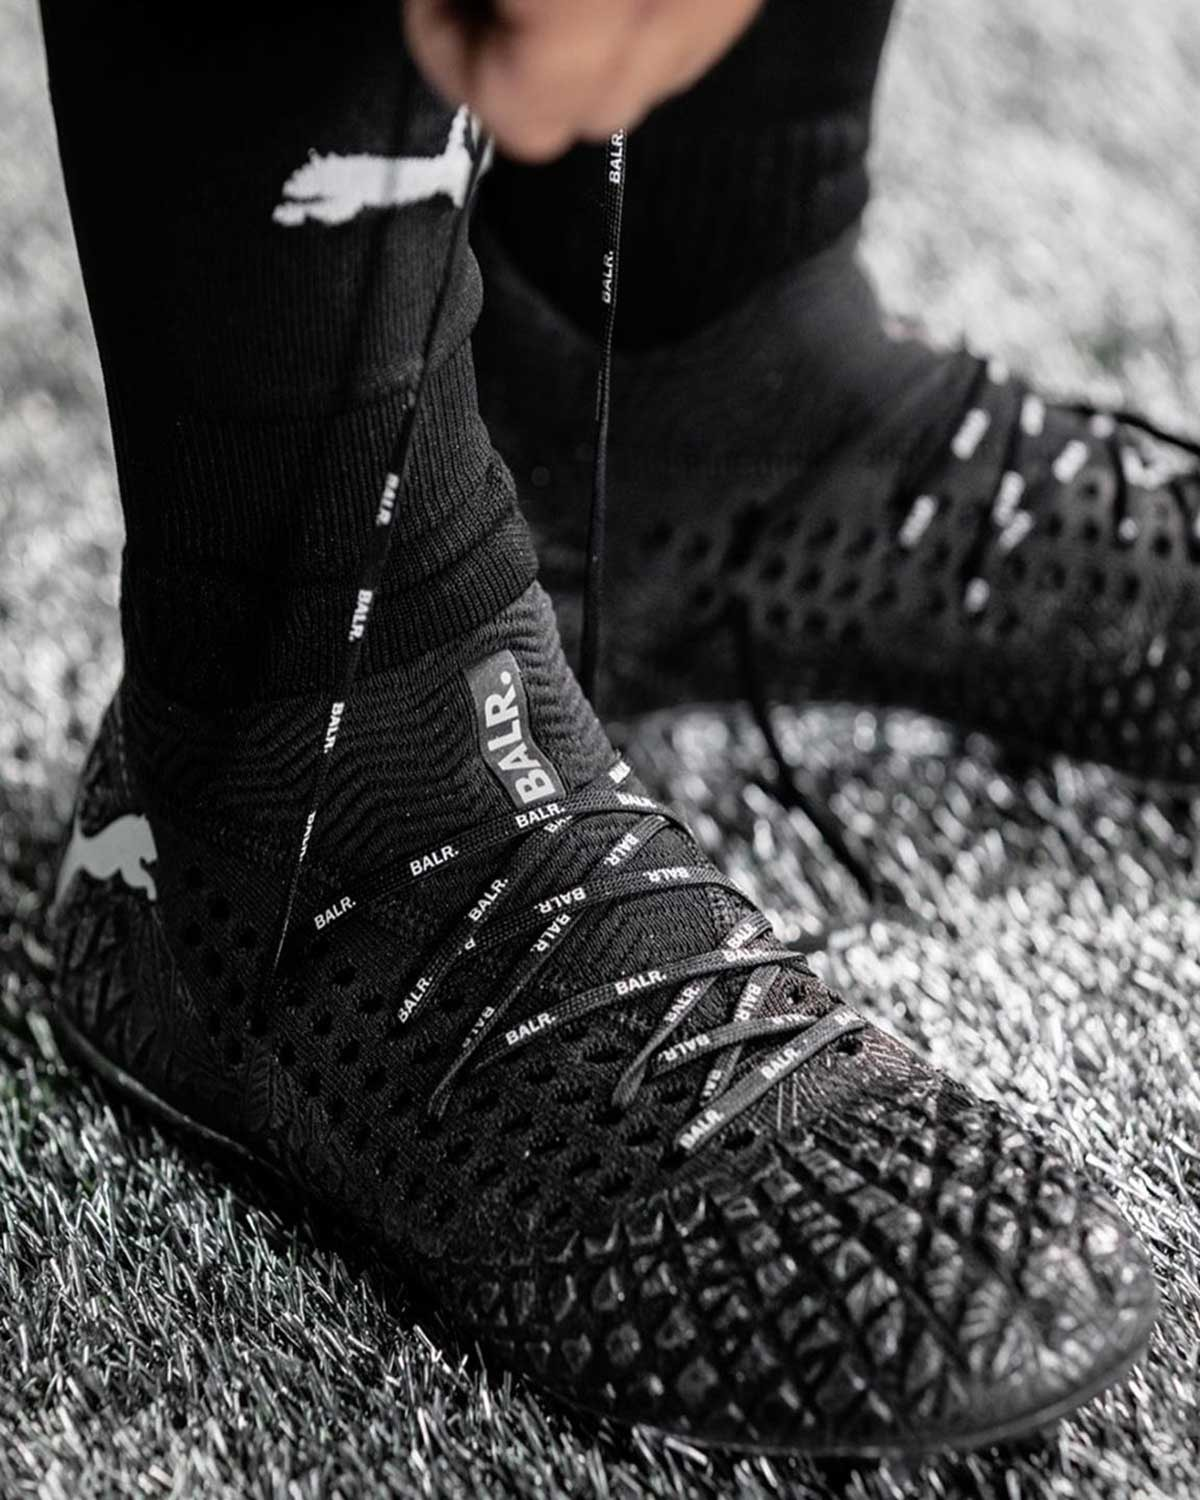 Puma launches collaboration with Balr.